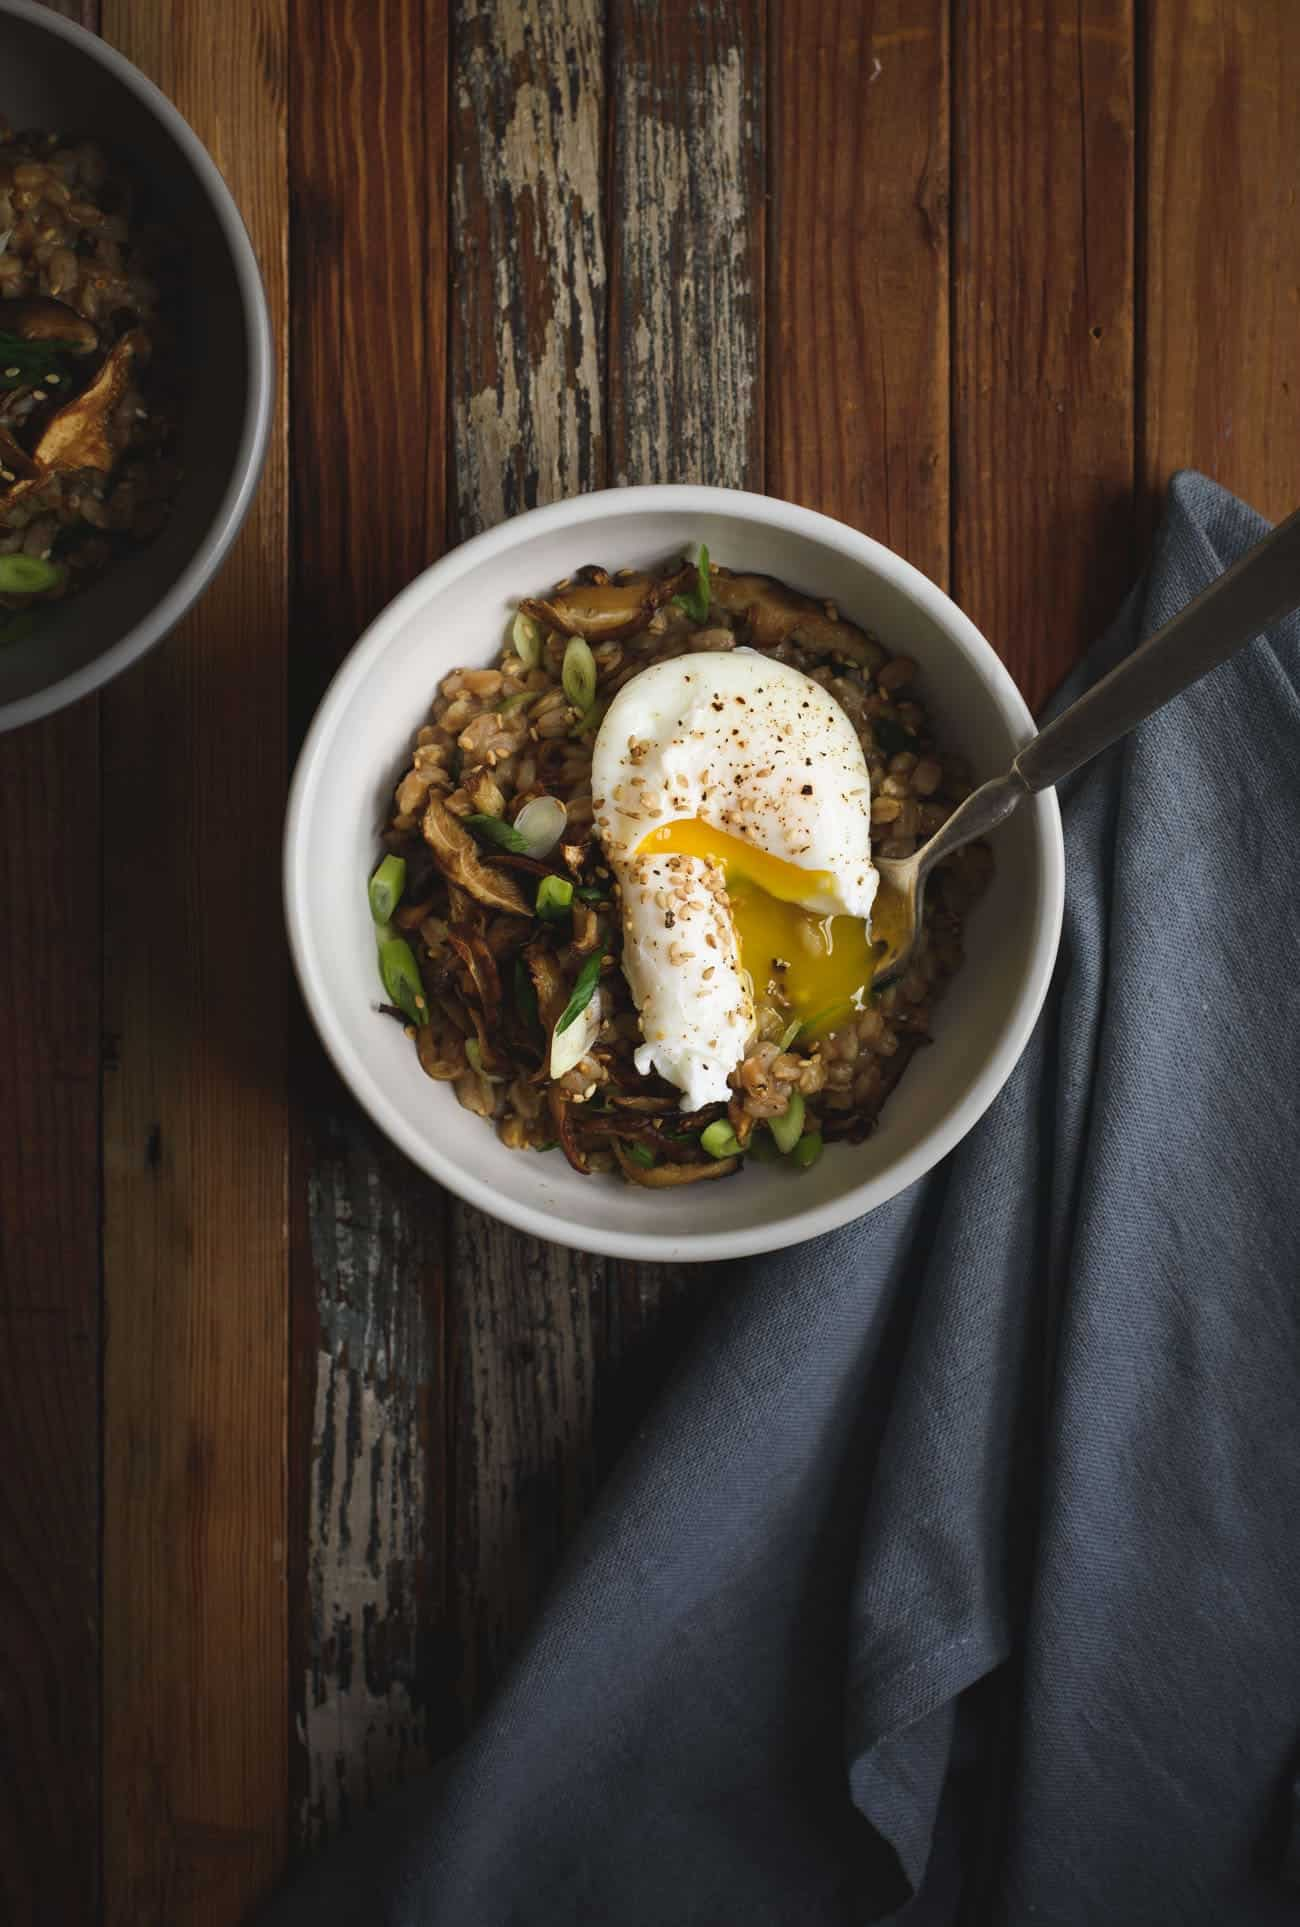 Savory farro porridge with a runny egg in a white bowl on a dark wooden background